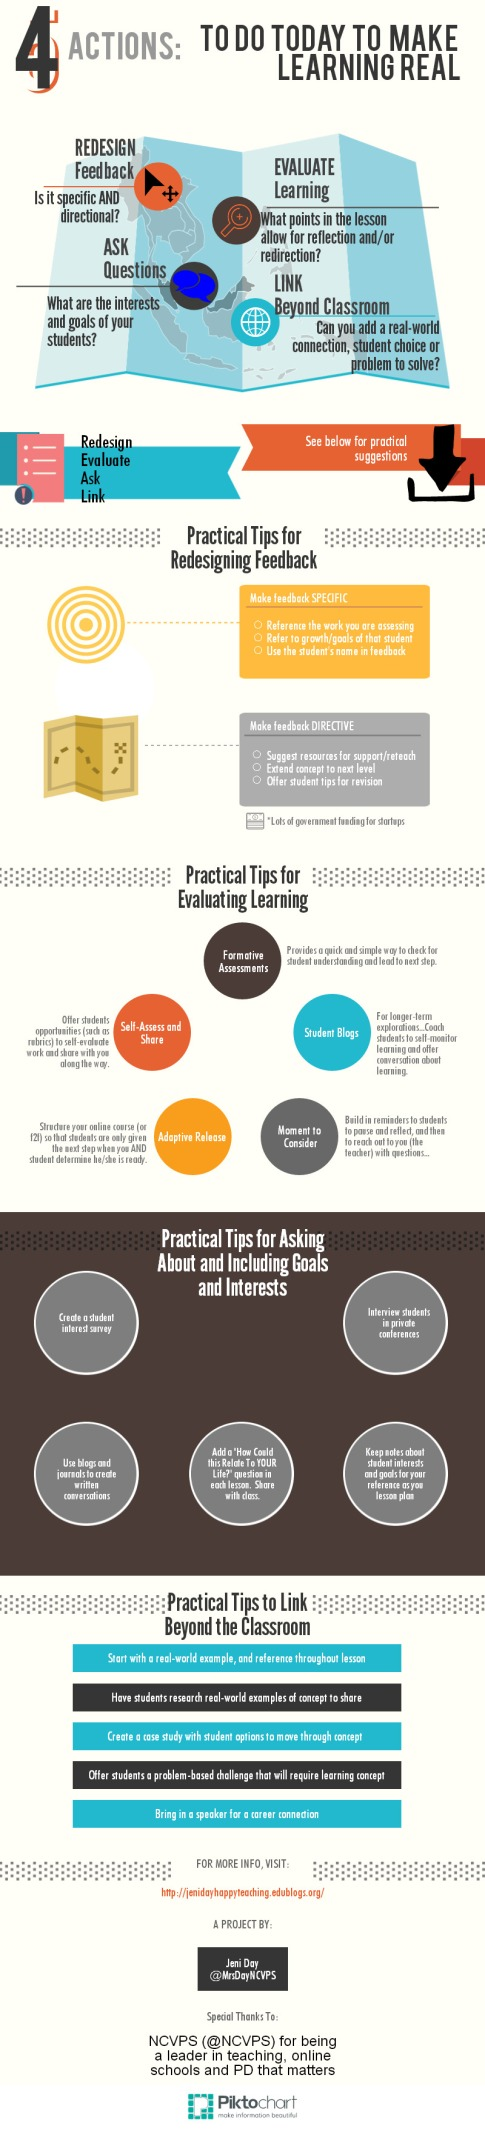 4-Steps-to-Real-Learning-Infographic